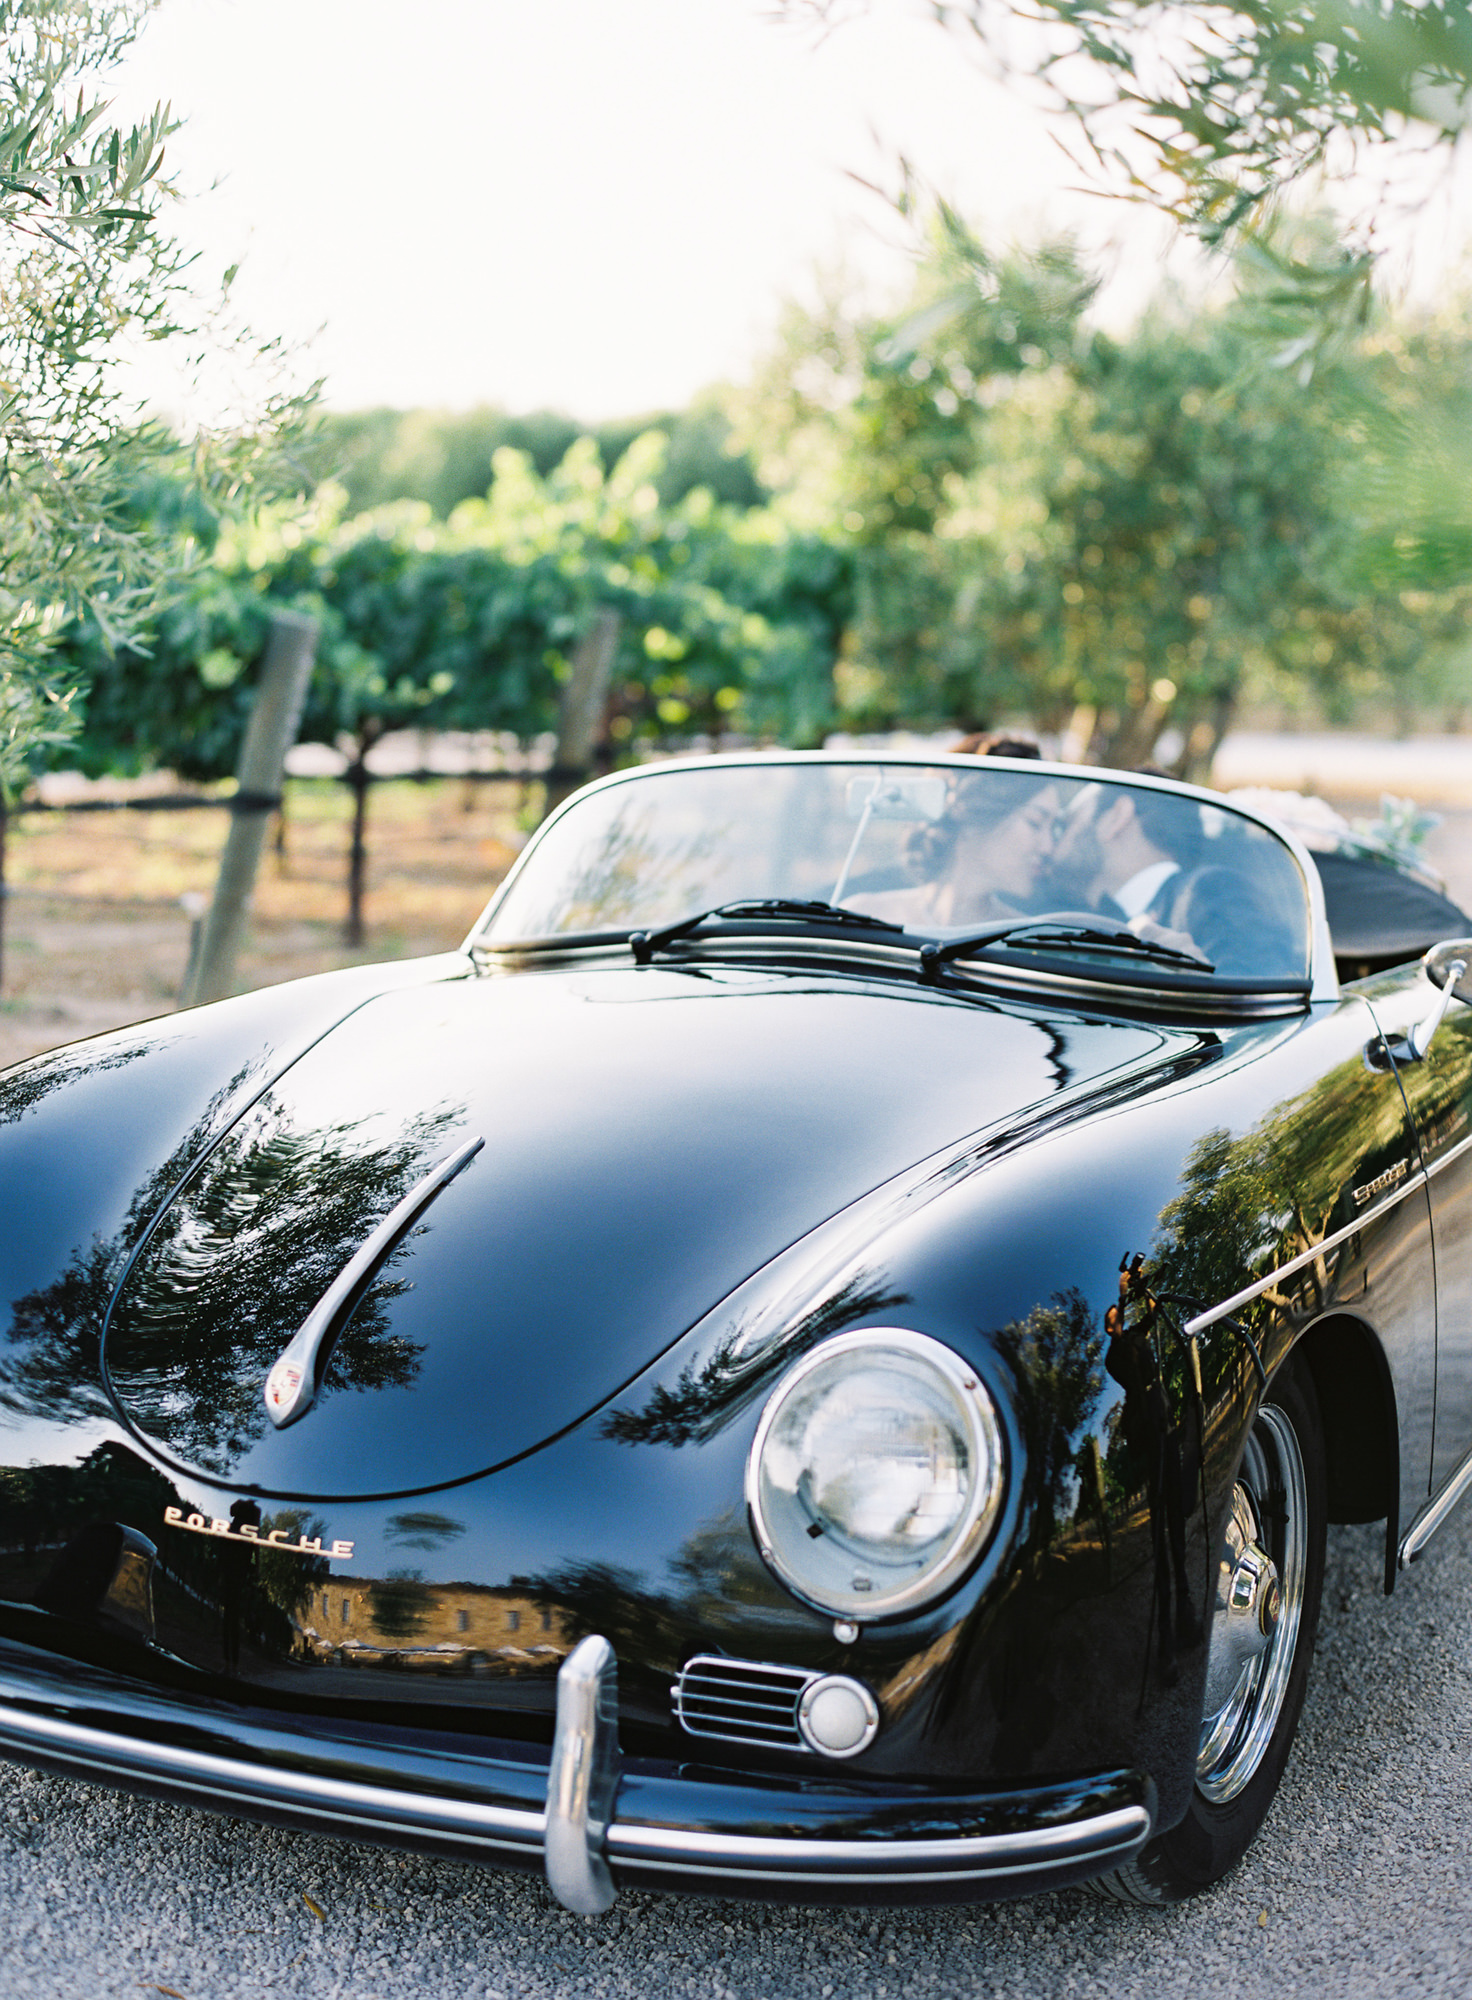 classic car wedding transportation Jen Huang Los Angeles wedding photographer